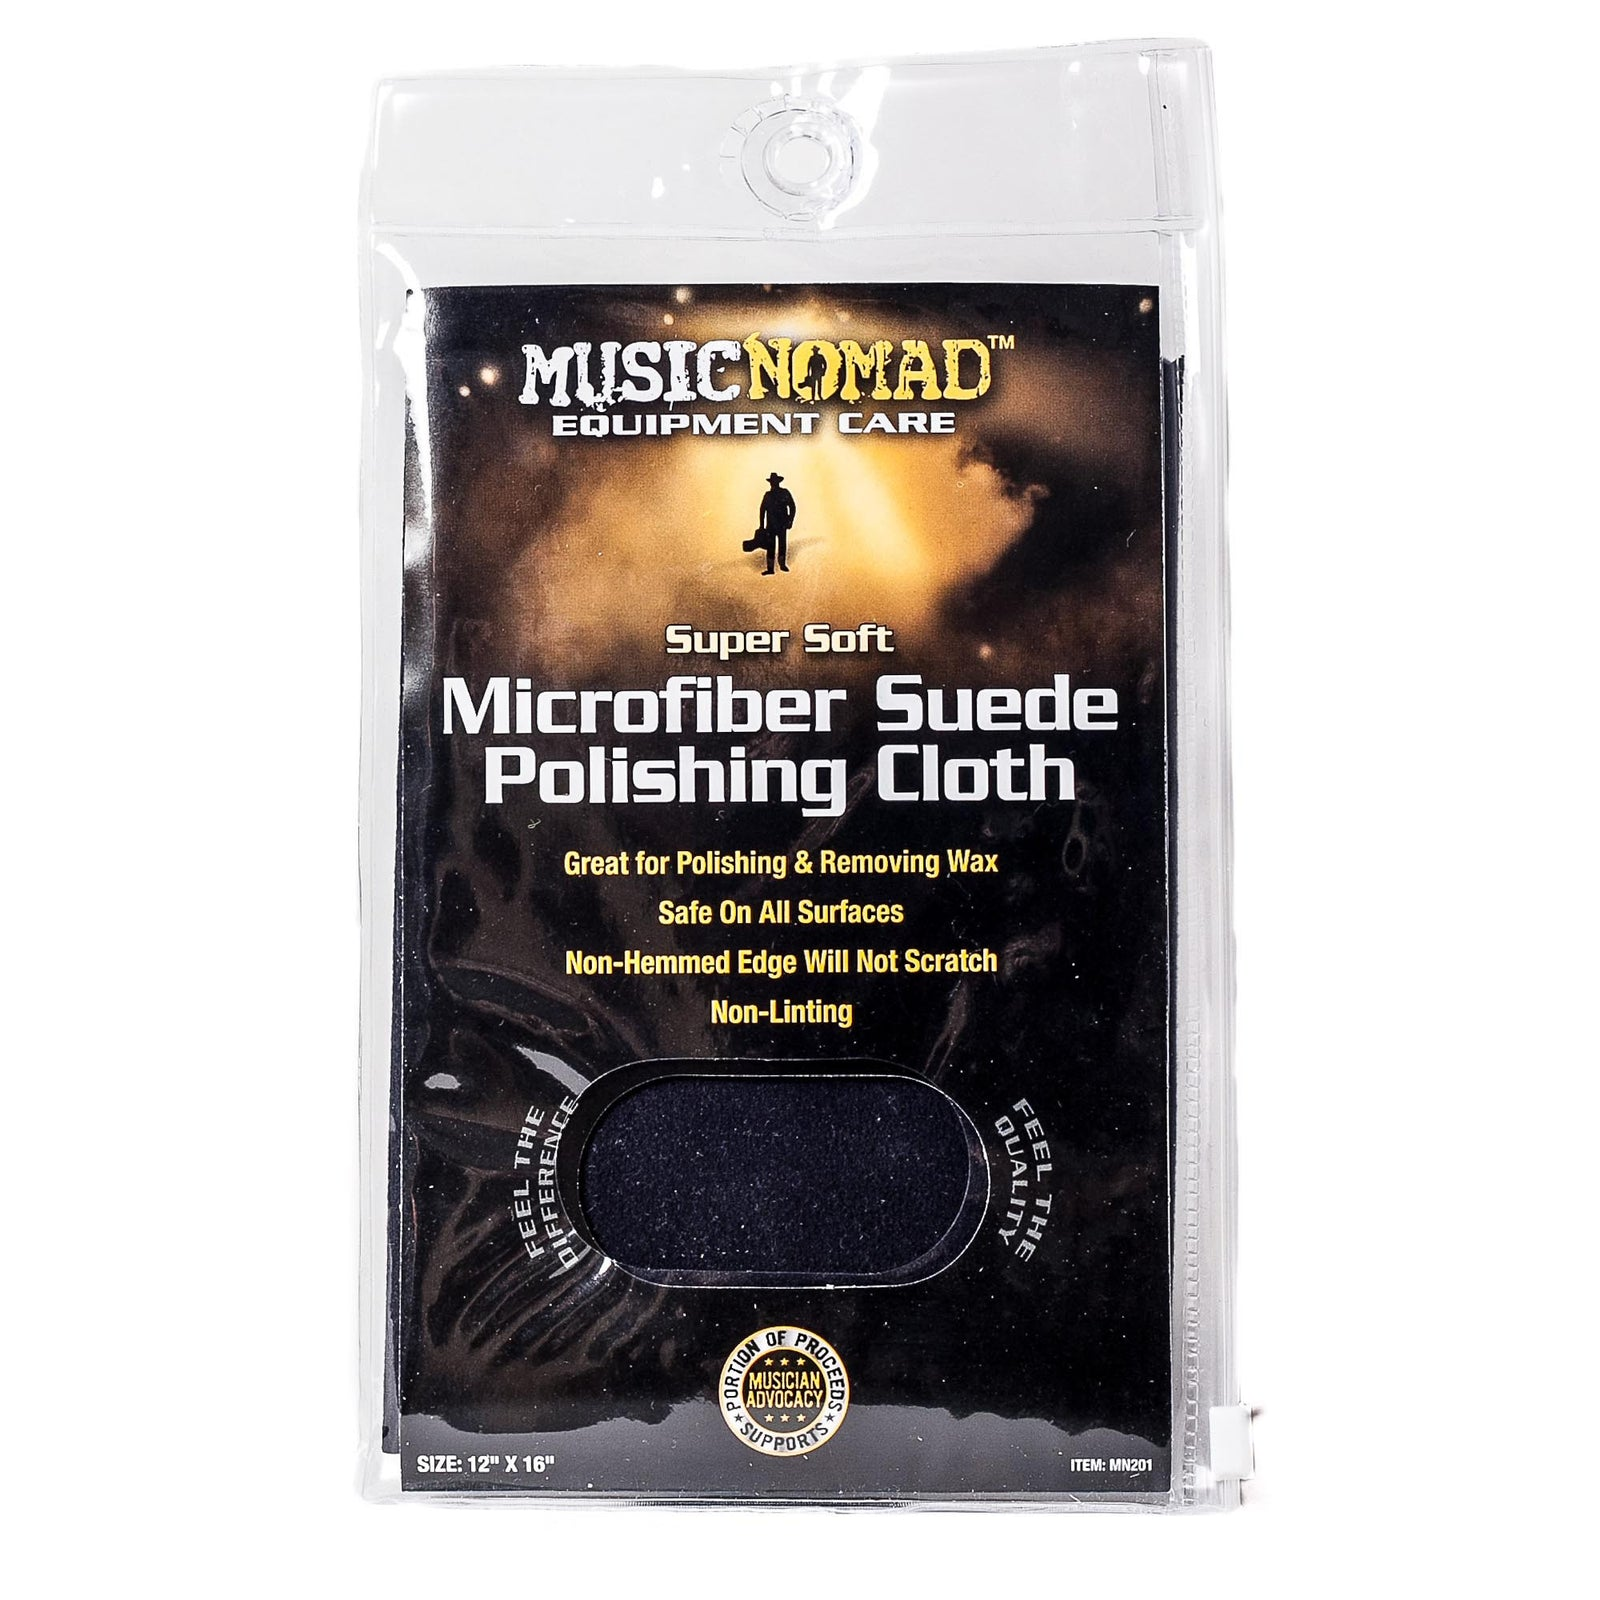 Music Nomad Microfiber Suede Polishing Cloth